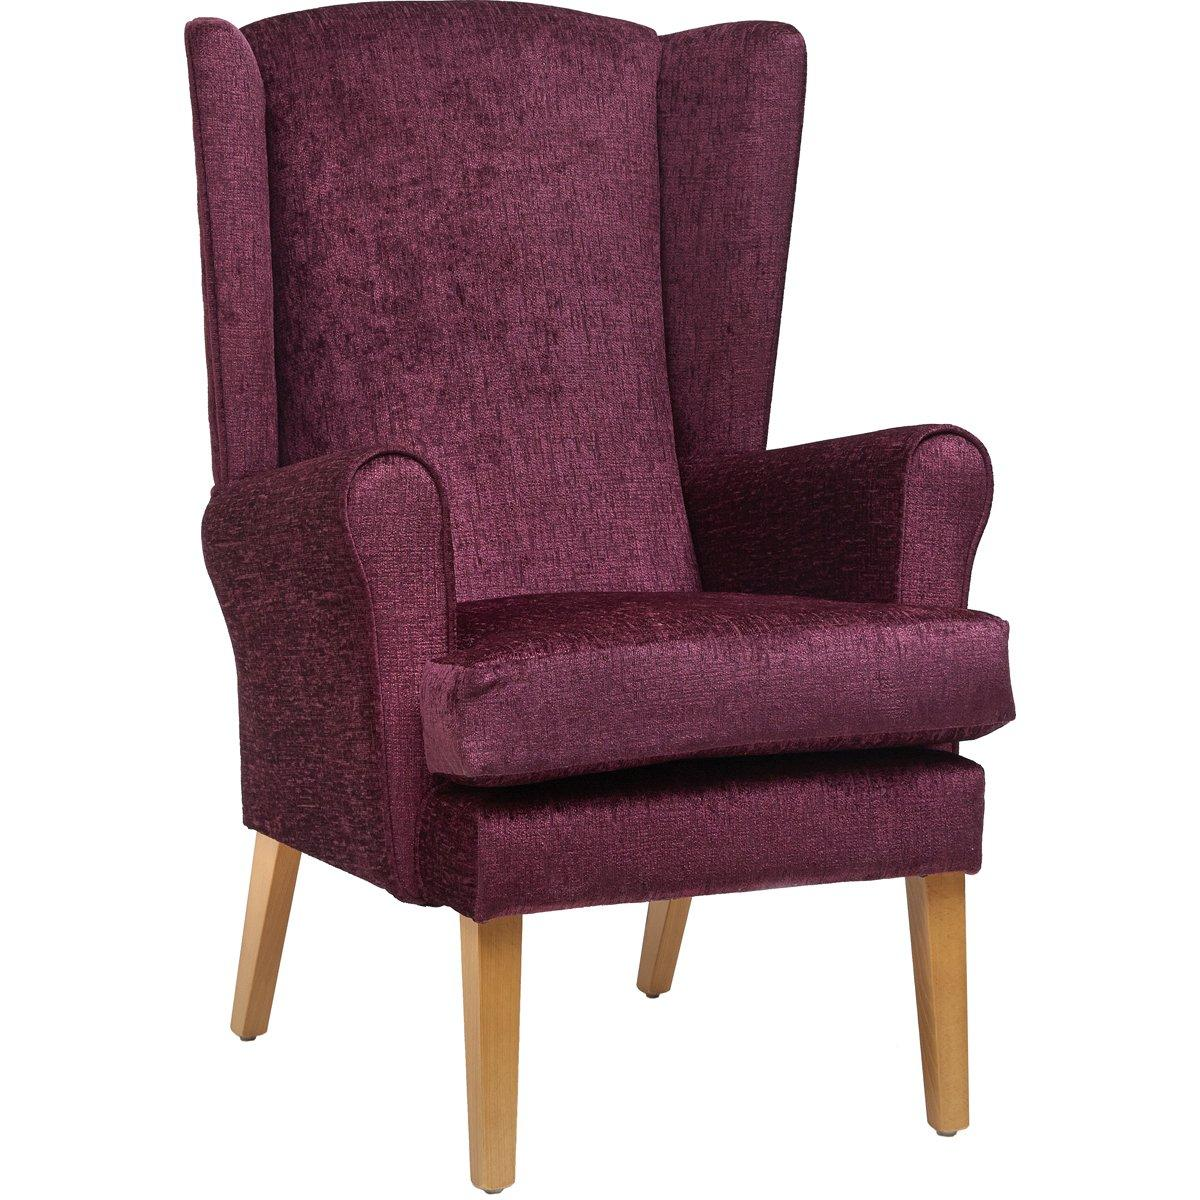 Ravenna Care Home Chair